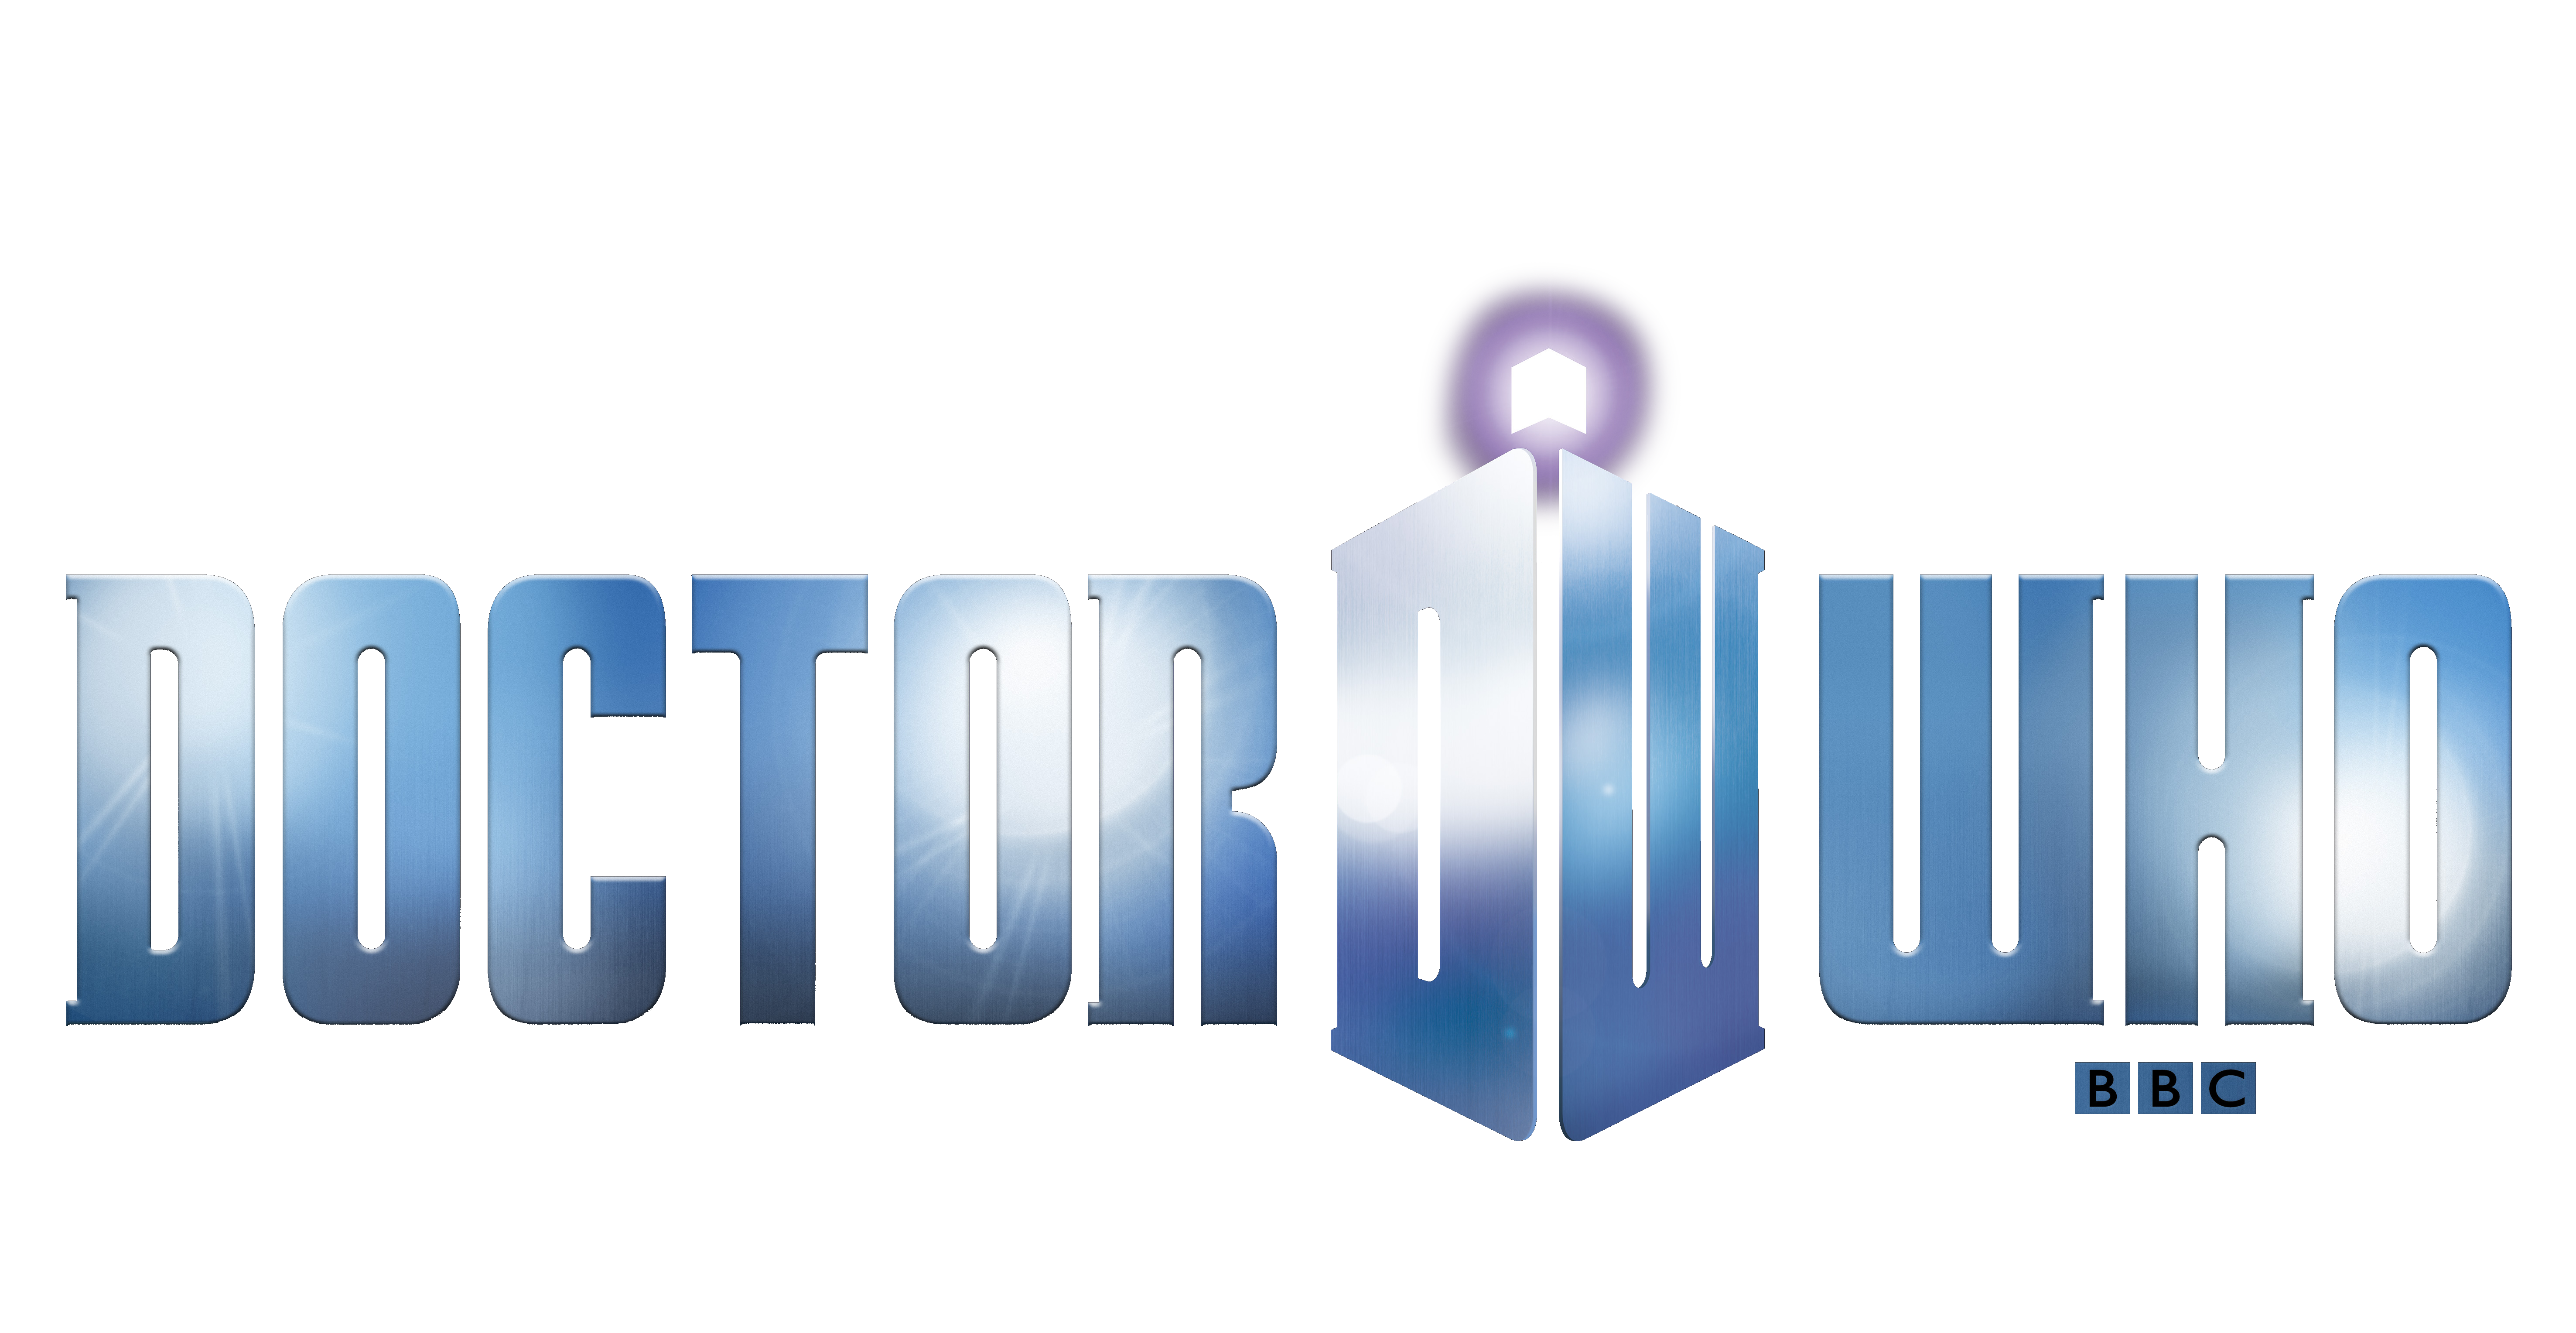 Dr Who Logo Png   www.imgkid.com - The Image Kid Has It!